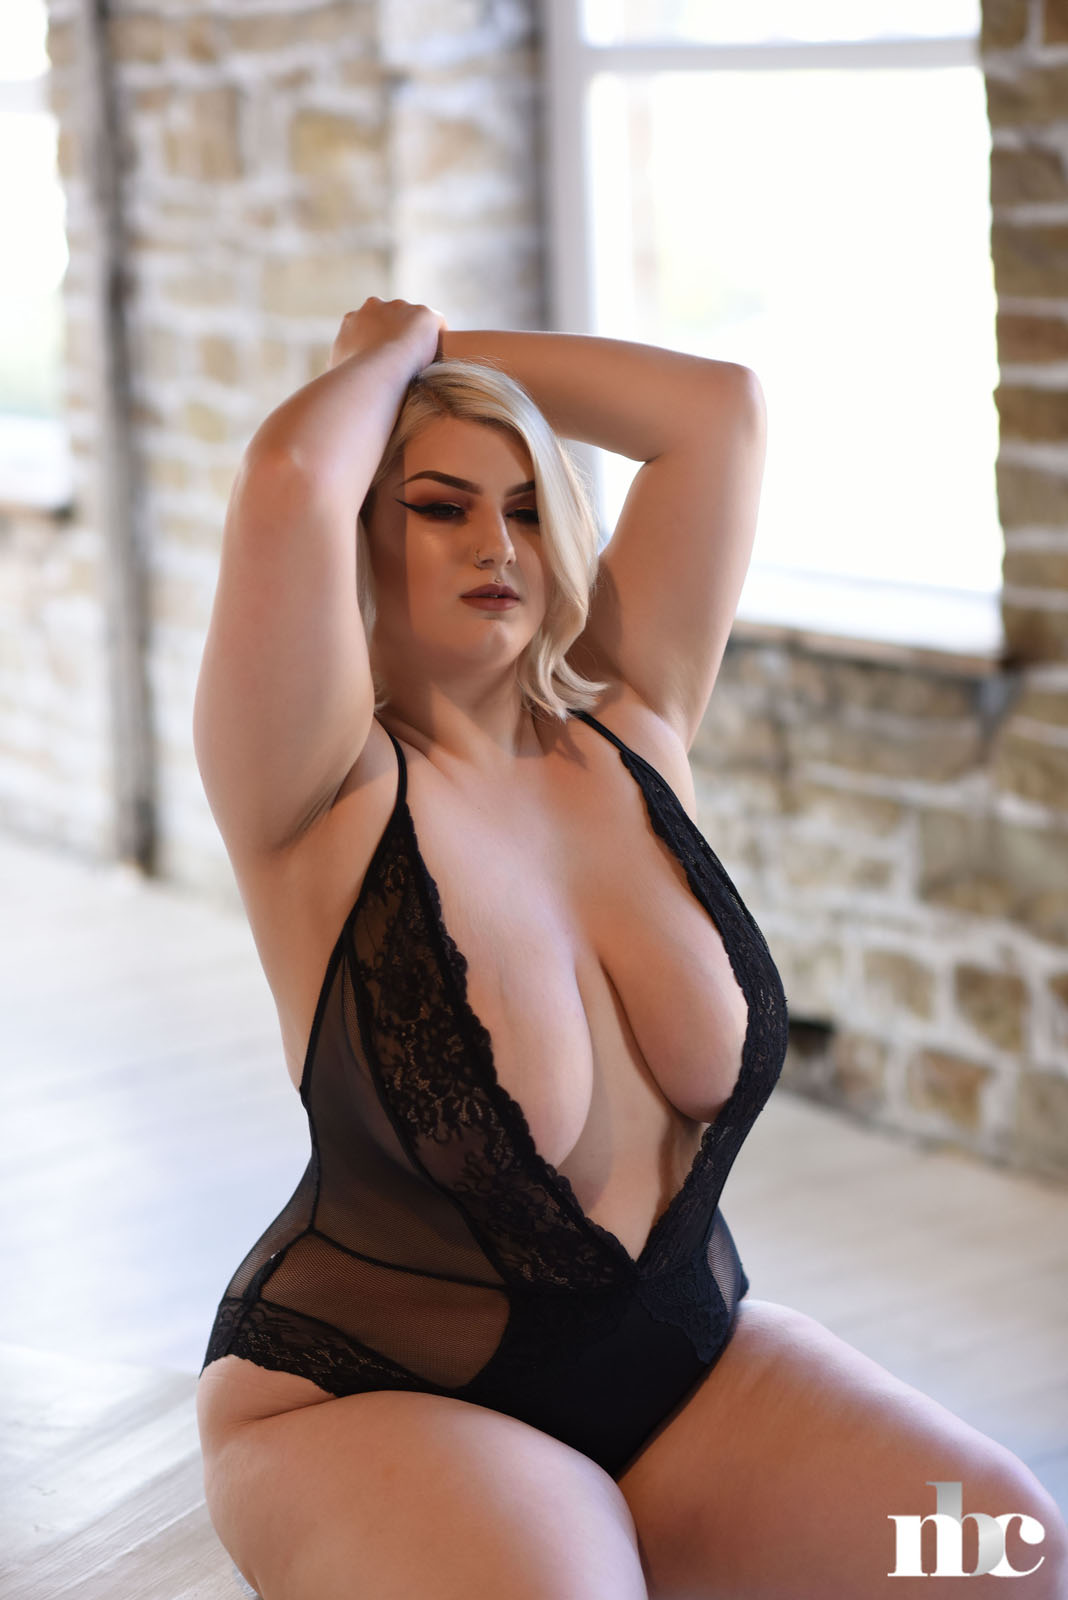 Peaches Nothing But Curves - Curvy Erotic